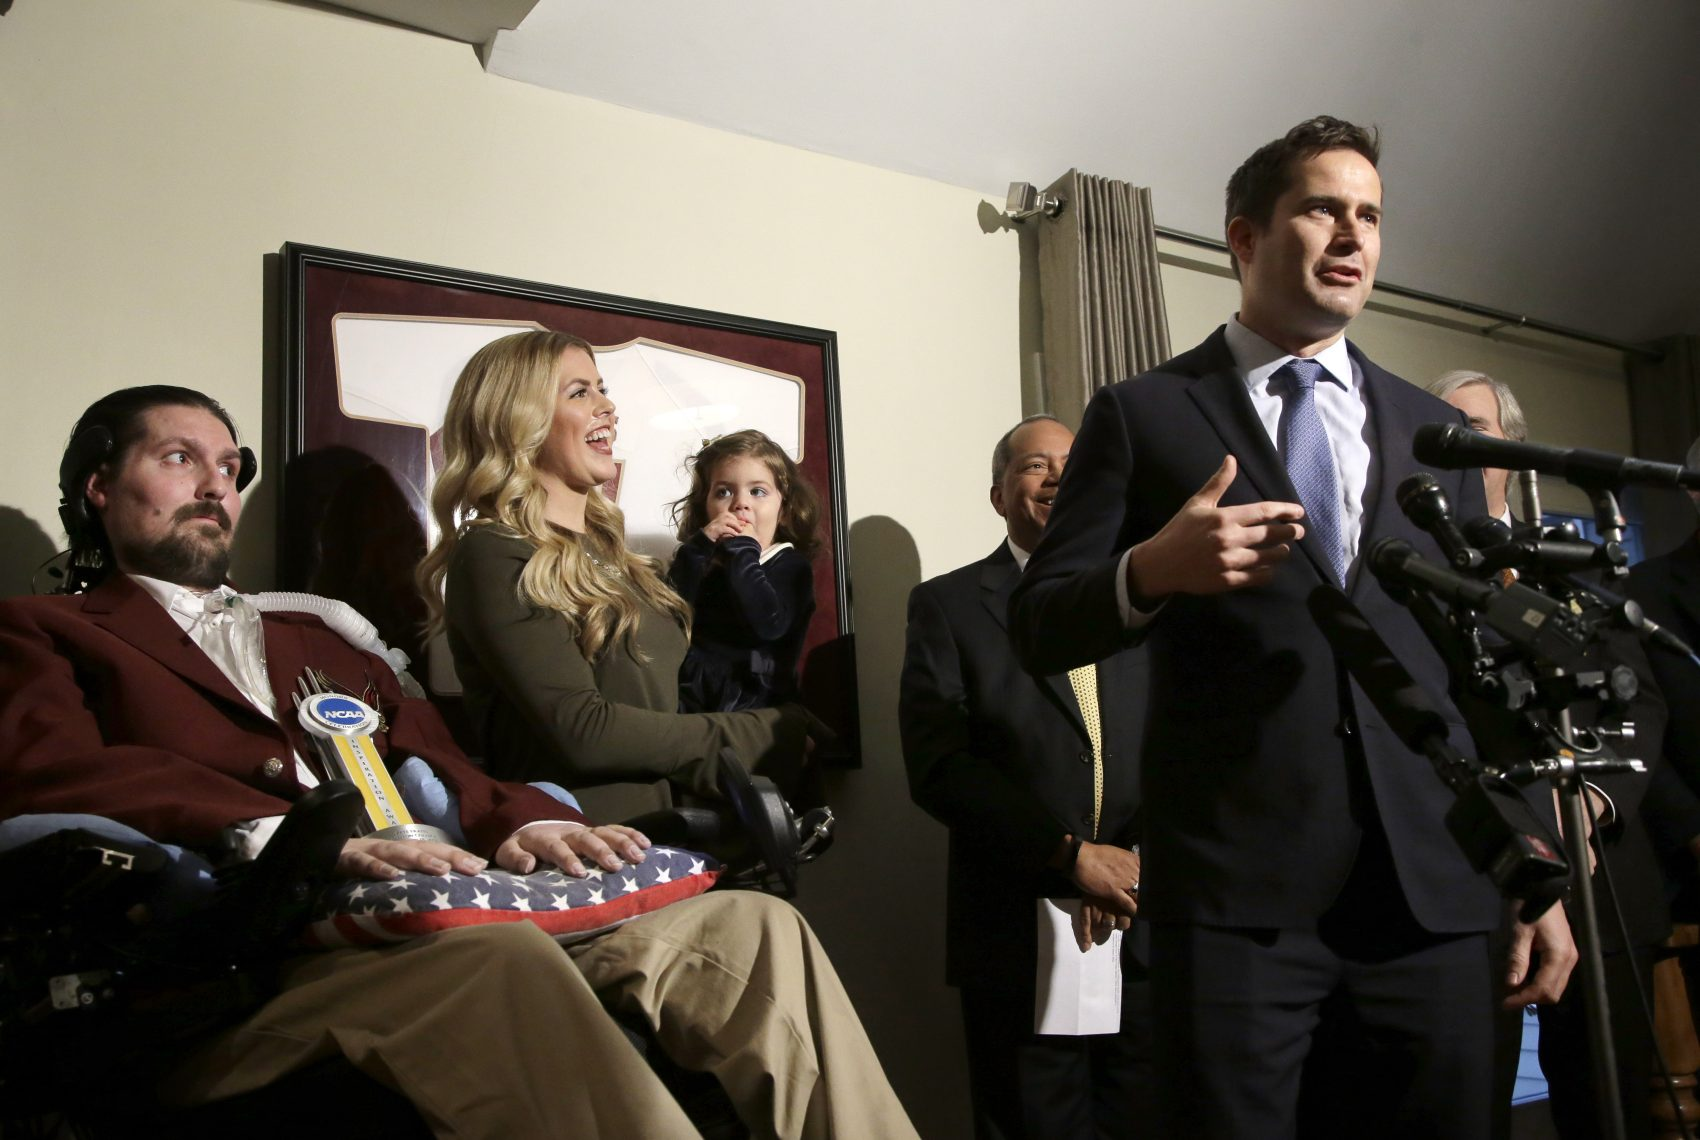 U.S. Rep. Seth Moulton, D-Mass., right, faces reporters as former Boston College baseball captain Pete Frates, left, and his wife Julie, center, and daughter Lucy, look on during ceremonies held to honor Frates with the 2017 NCAA Inspiration Award, Tuesday, Dec. 13, 2016, at their home in Beverly, Mass. (Steven Senne/AP)